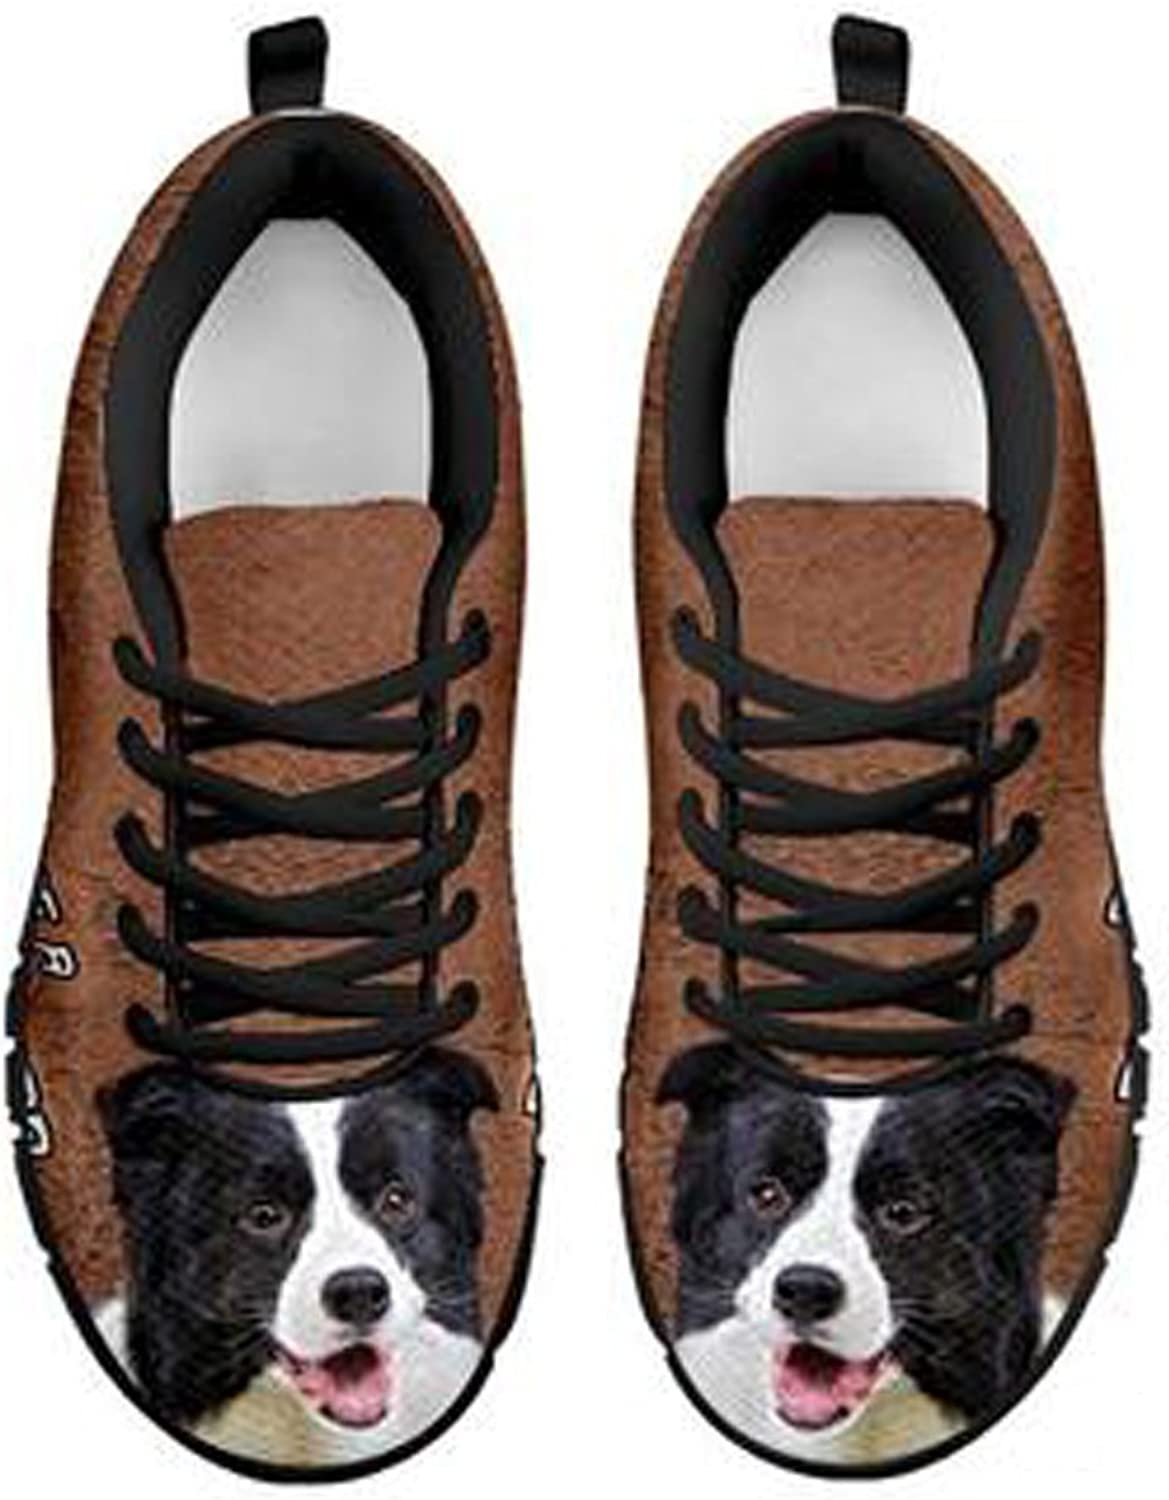 Brand Amazing Border Collie Dog Print Men's Casual Sneakers (7. 5, Black)